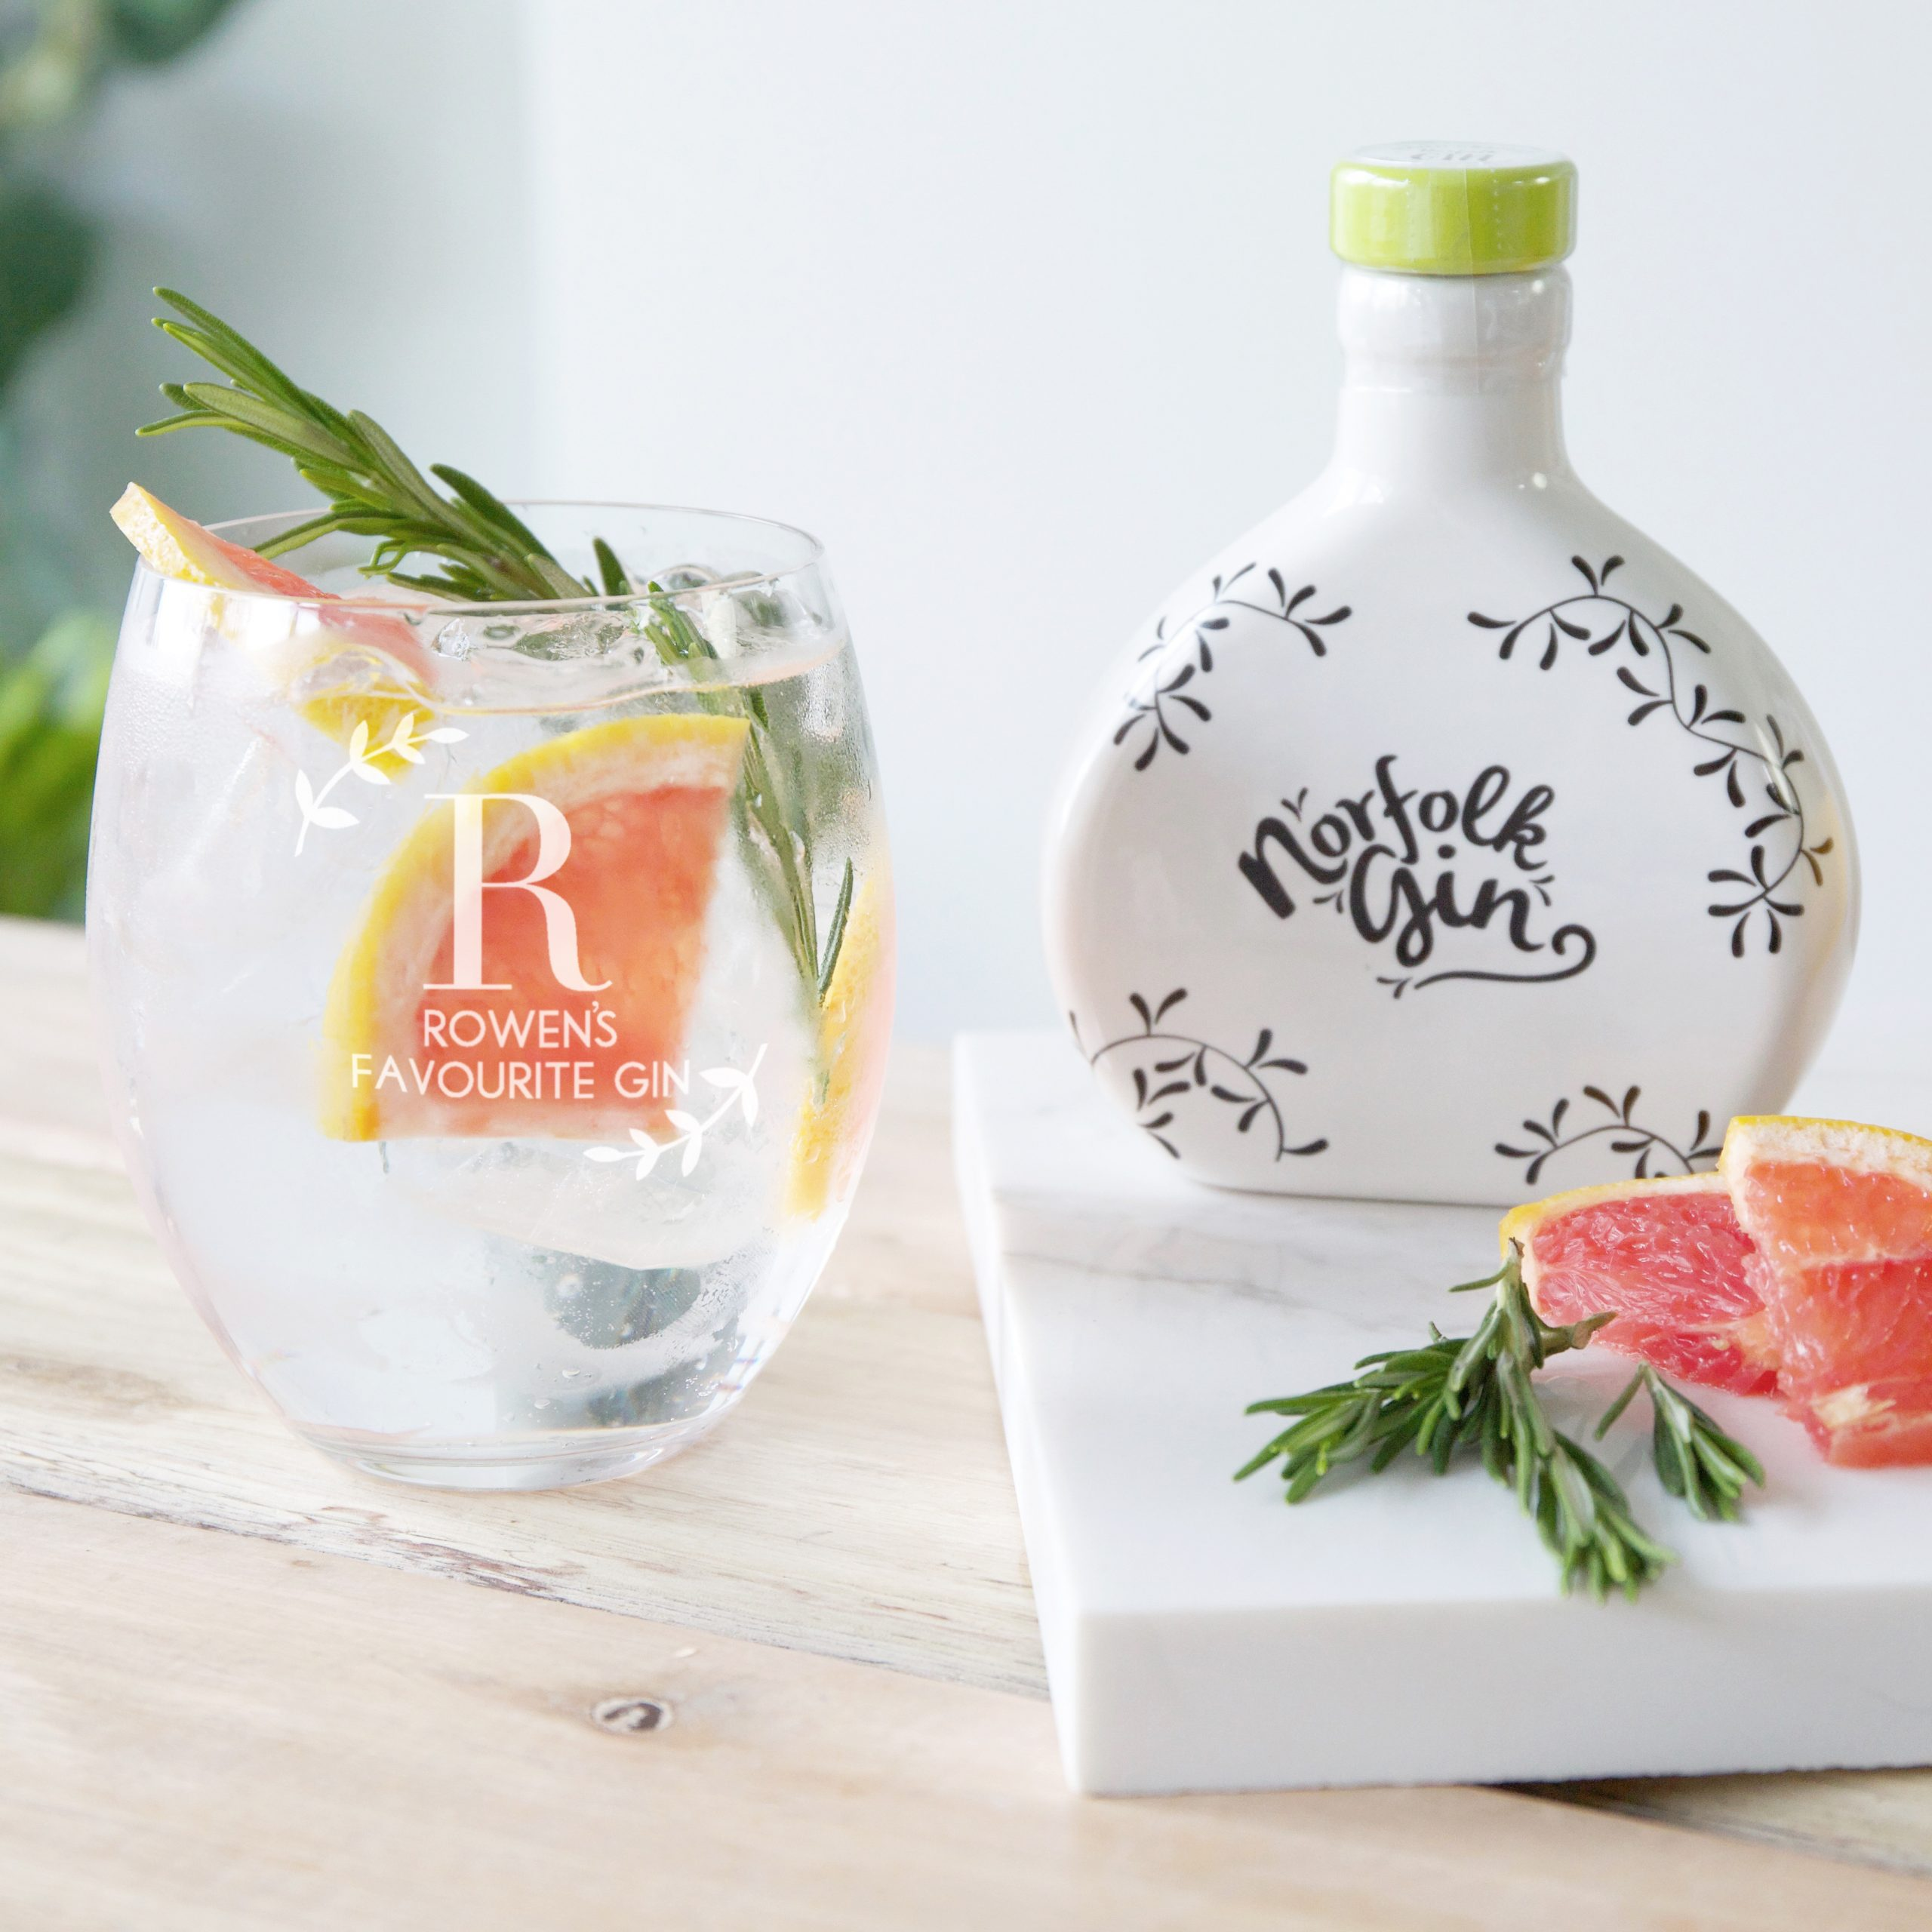 Norfolk Gin The Delicate Diner Producer of the Month